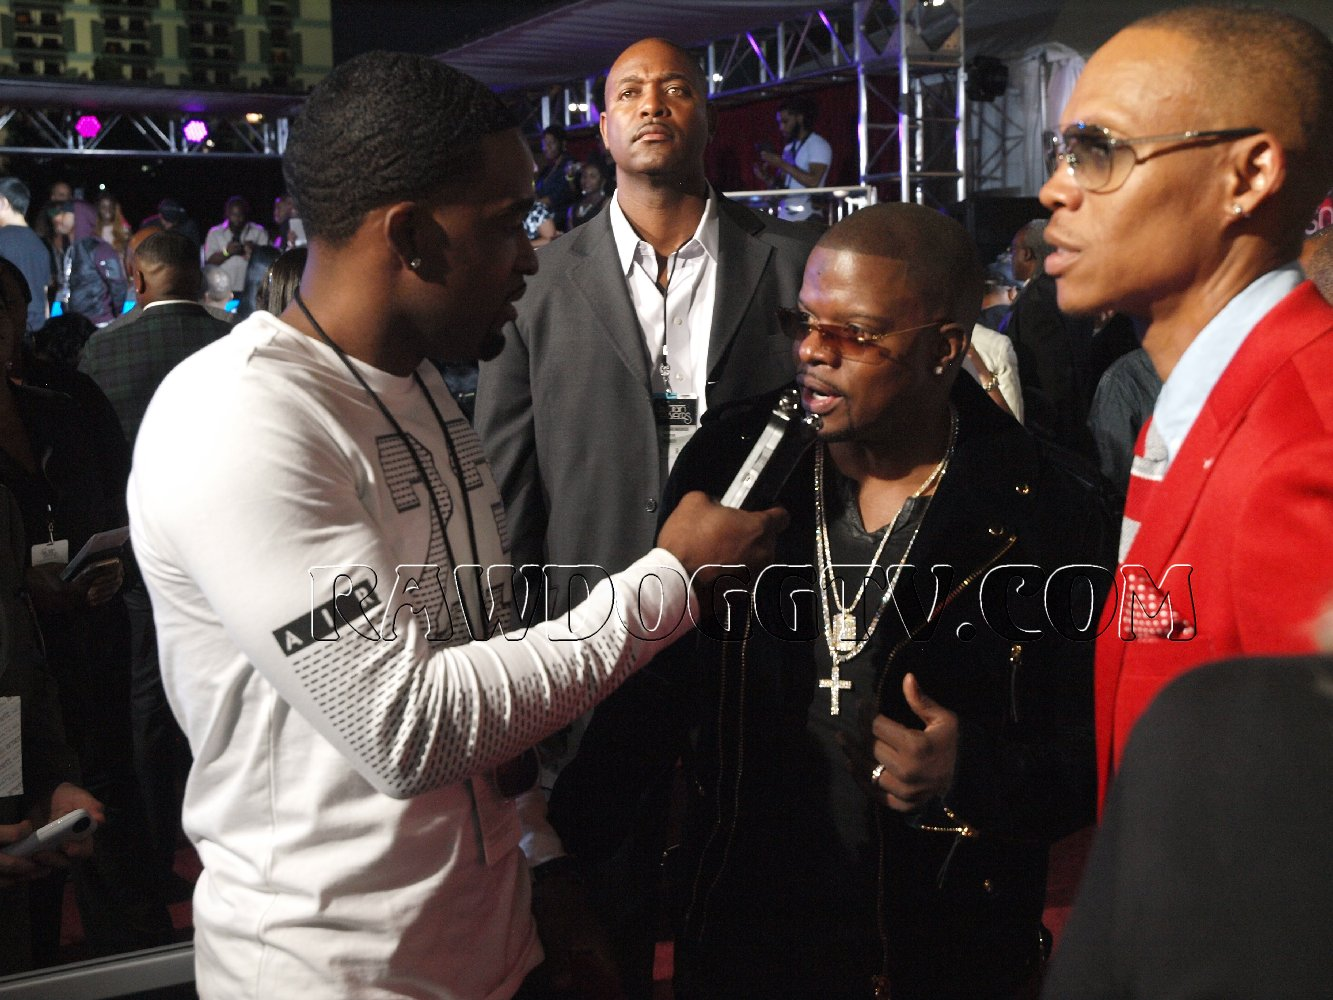 soul-train-music-awards-2016-photos-air-date-nov-27th-bet-centric-pr-mobilewire-305-490-2182-26